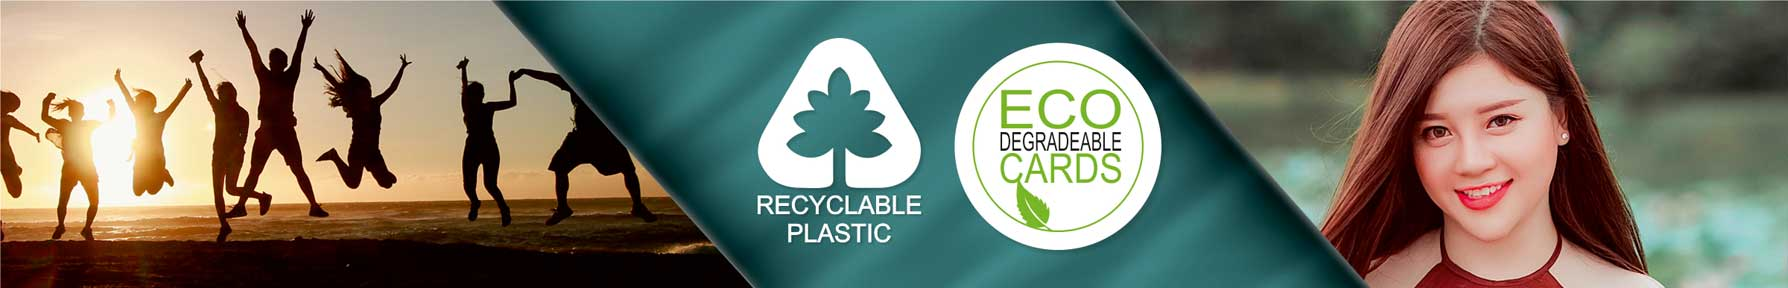 ID Cards from Premier Eco Cards Recyclable and degradable eco friendly